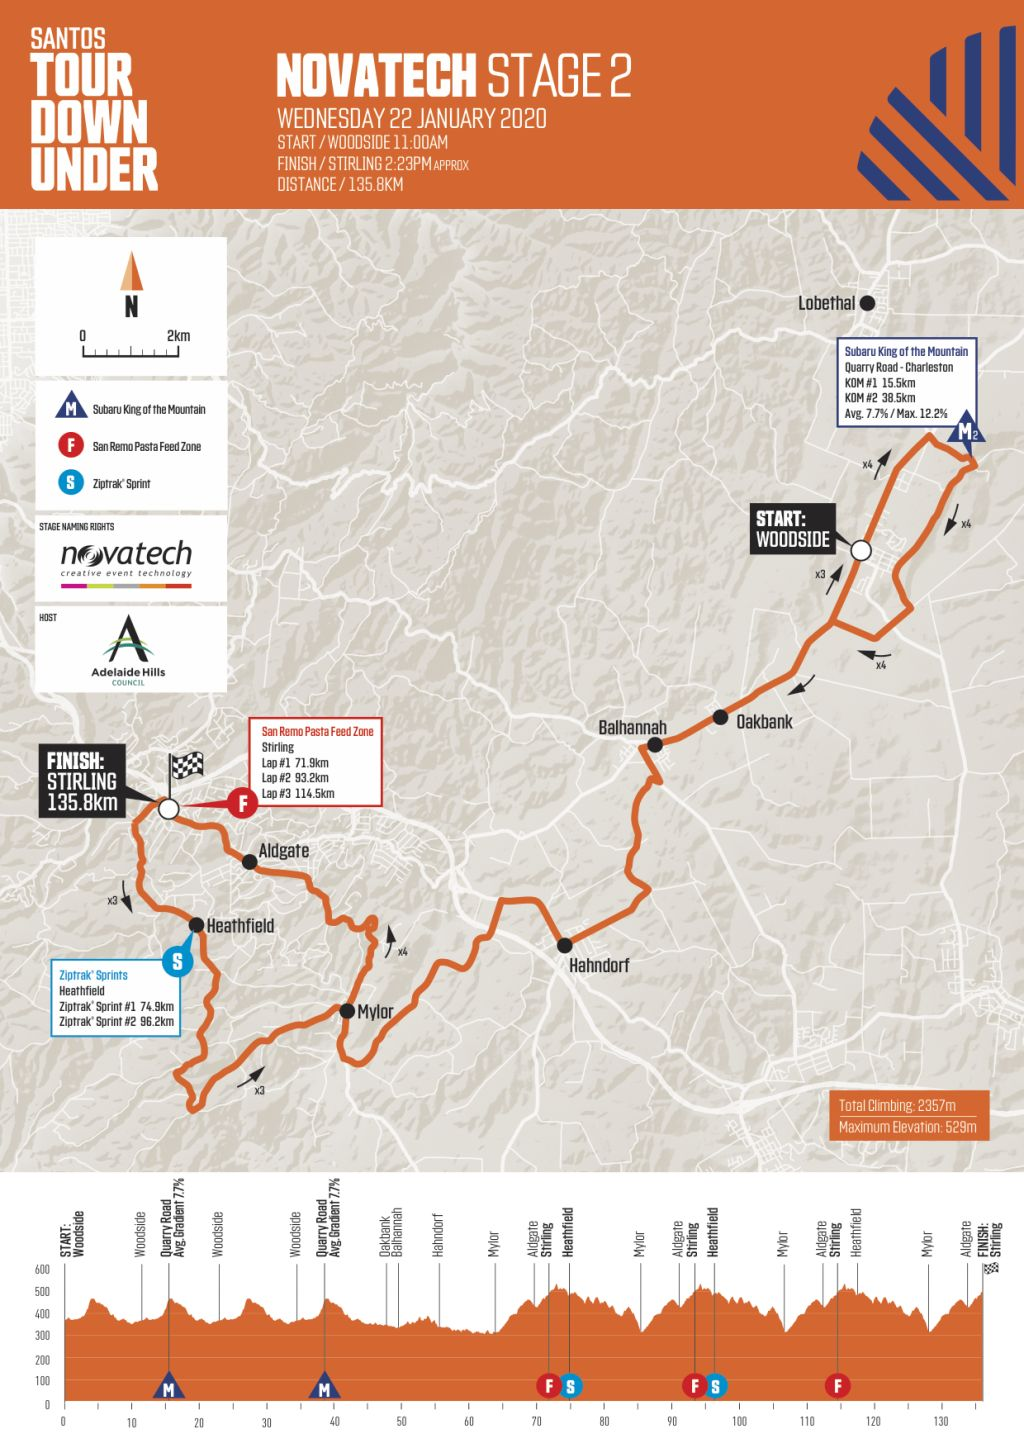 Tour Down Under 2020 stage 2